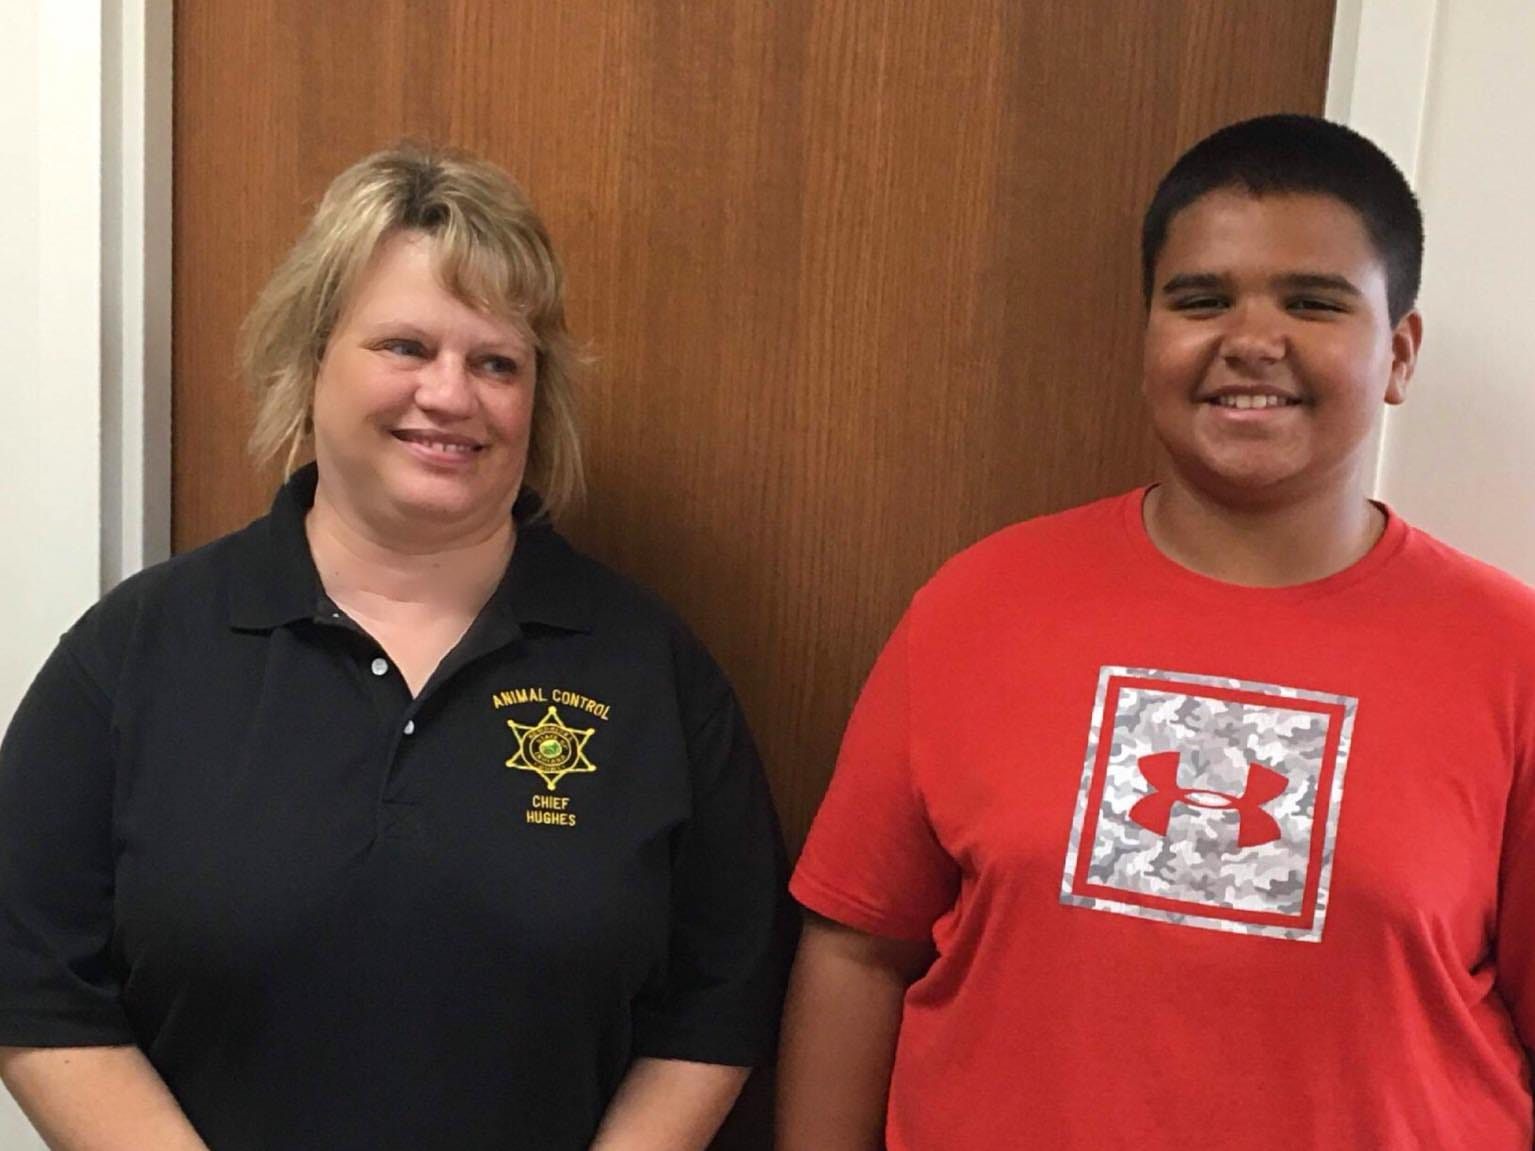 Hendricks County Animal Control Shelter chief director LaDonna Hughes accepted the $100 donation Anthony Goines gave the shelter from his 13th birthday.